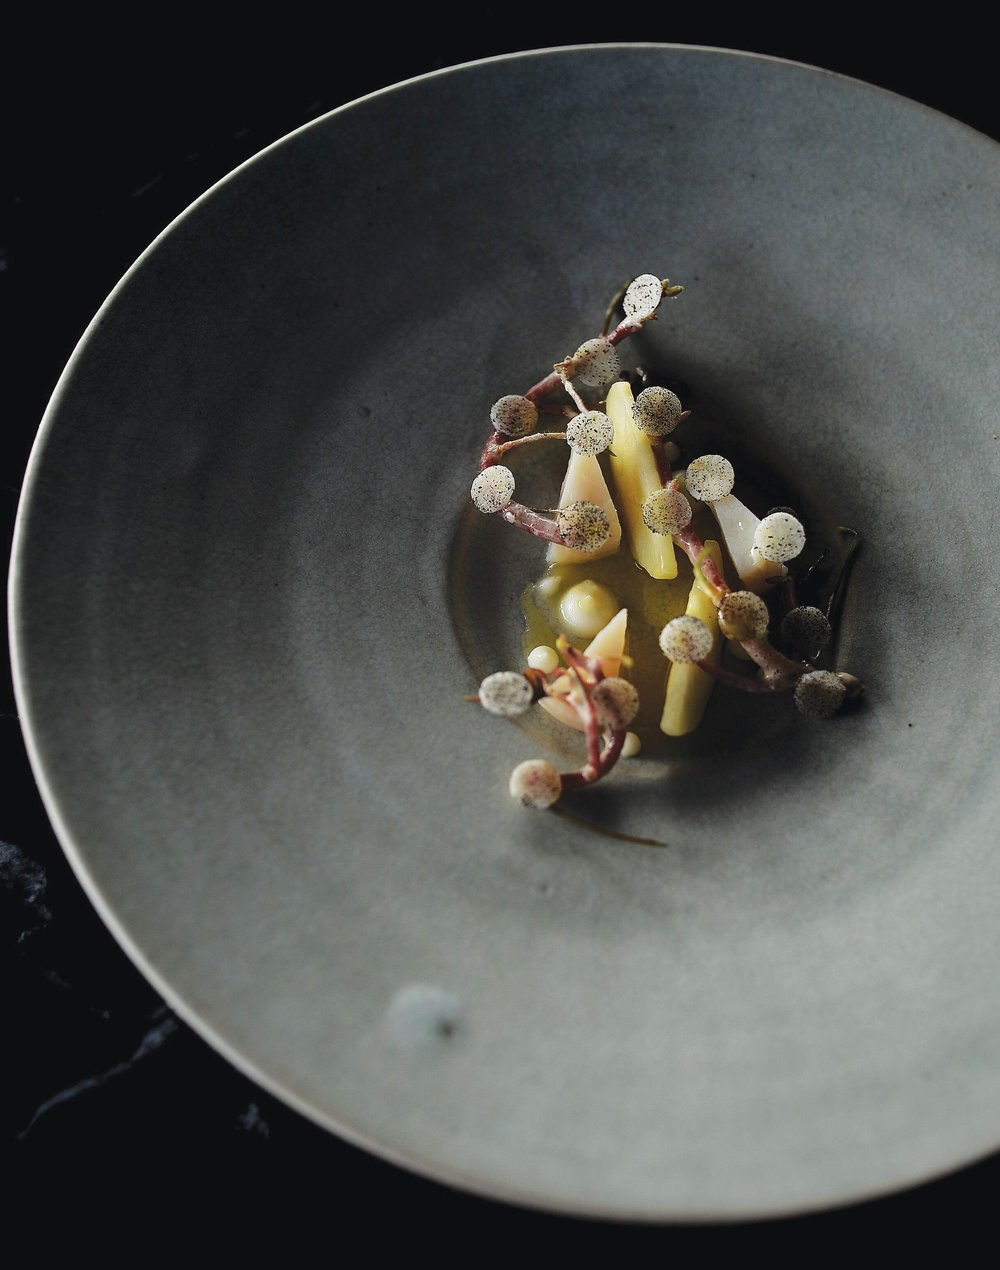 Scallops from the Trondheim coast in Arctic Norway, grilled in the shell, with winter apples and celeriac.Photo Courtesy of Maaemo